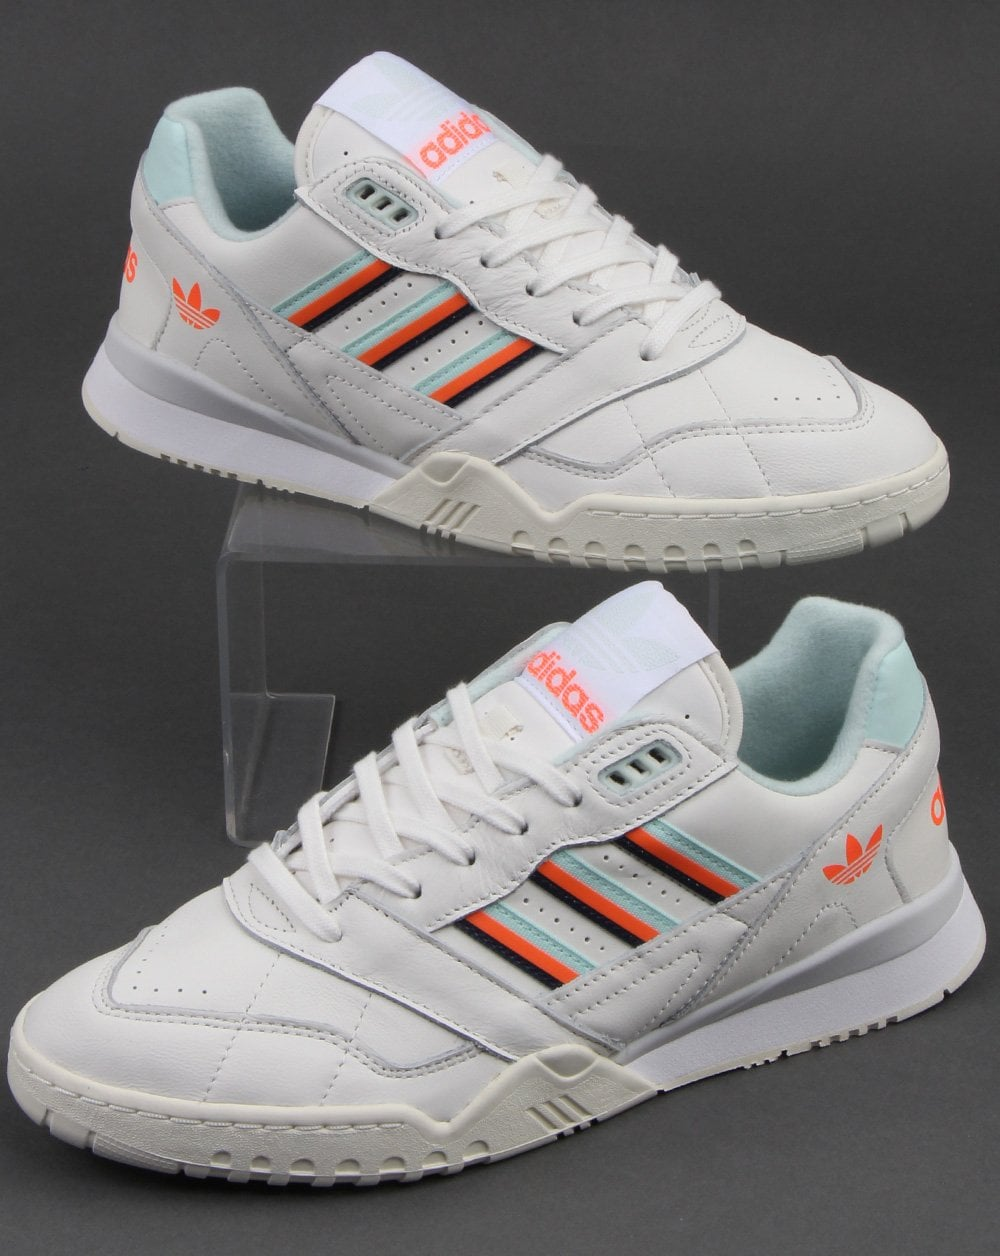 online store 59a08 b8d7d adidas Trainers Adidas Ar Trainer Cloud White Ice Mint